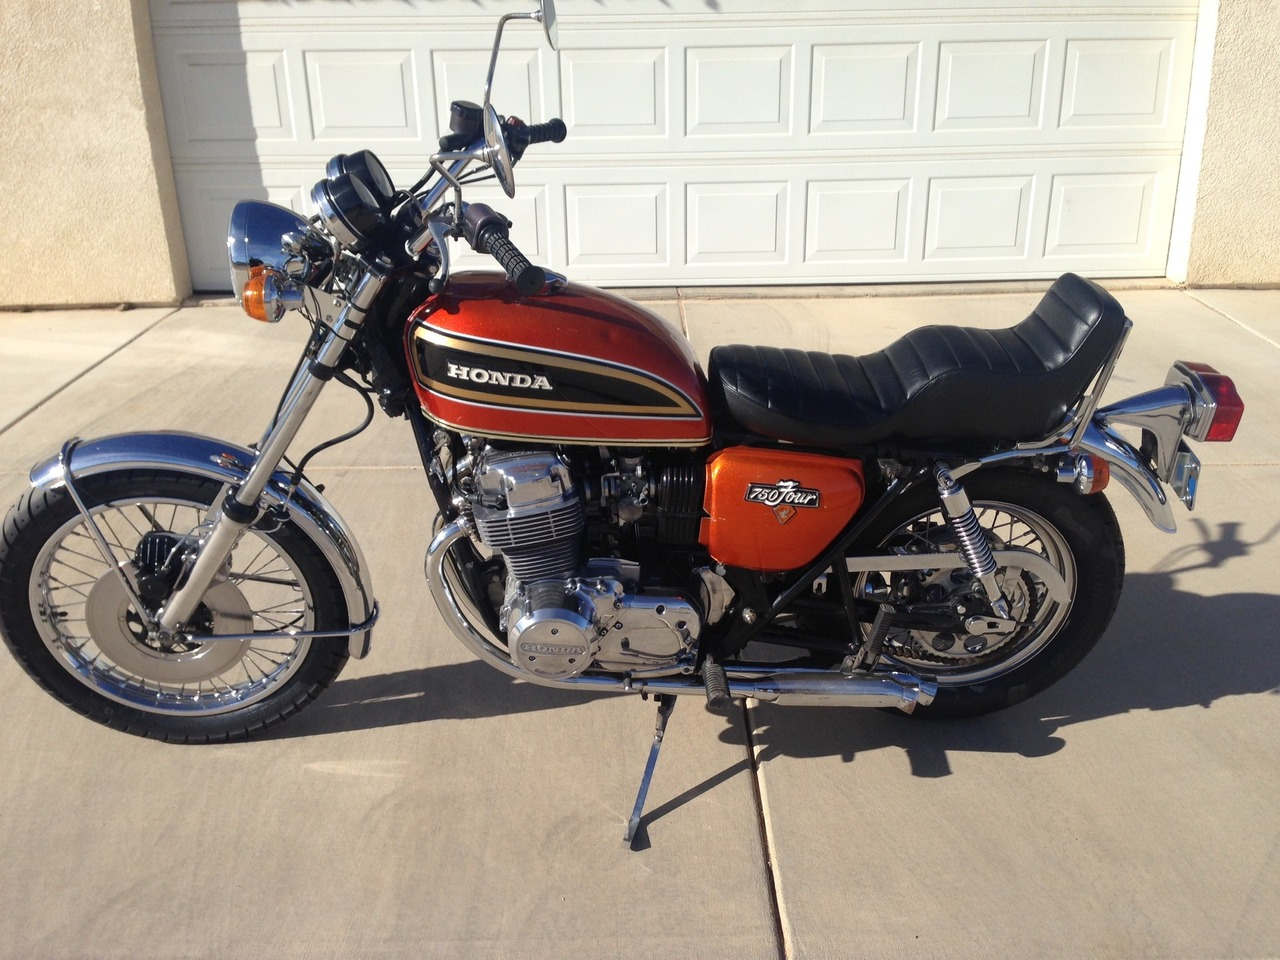 1973 honda cb 750 750 motorcycle from hesperia ca today sale 6 500. Black Bedroom Furniture Sets. Home Design Ideas